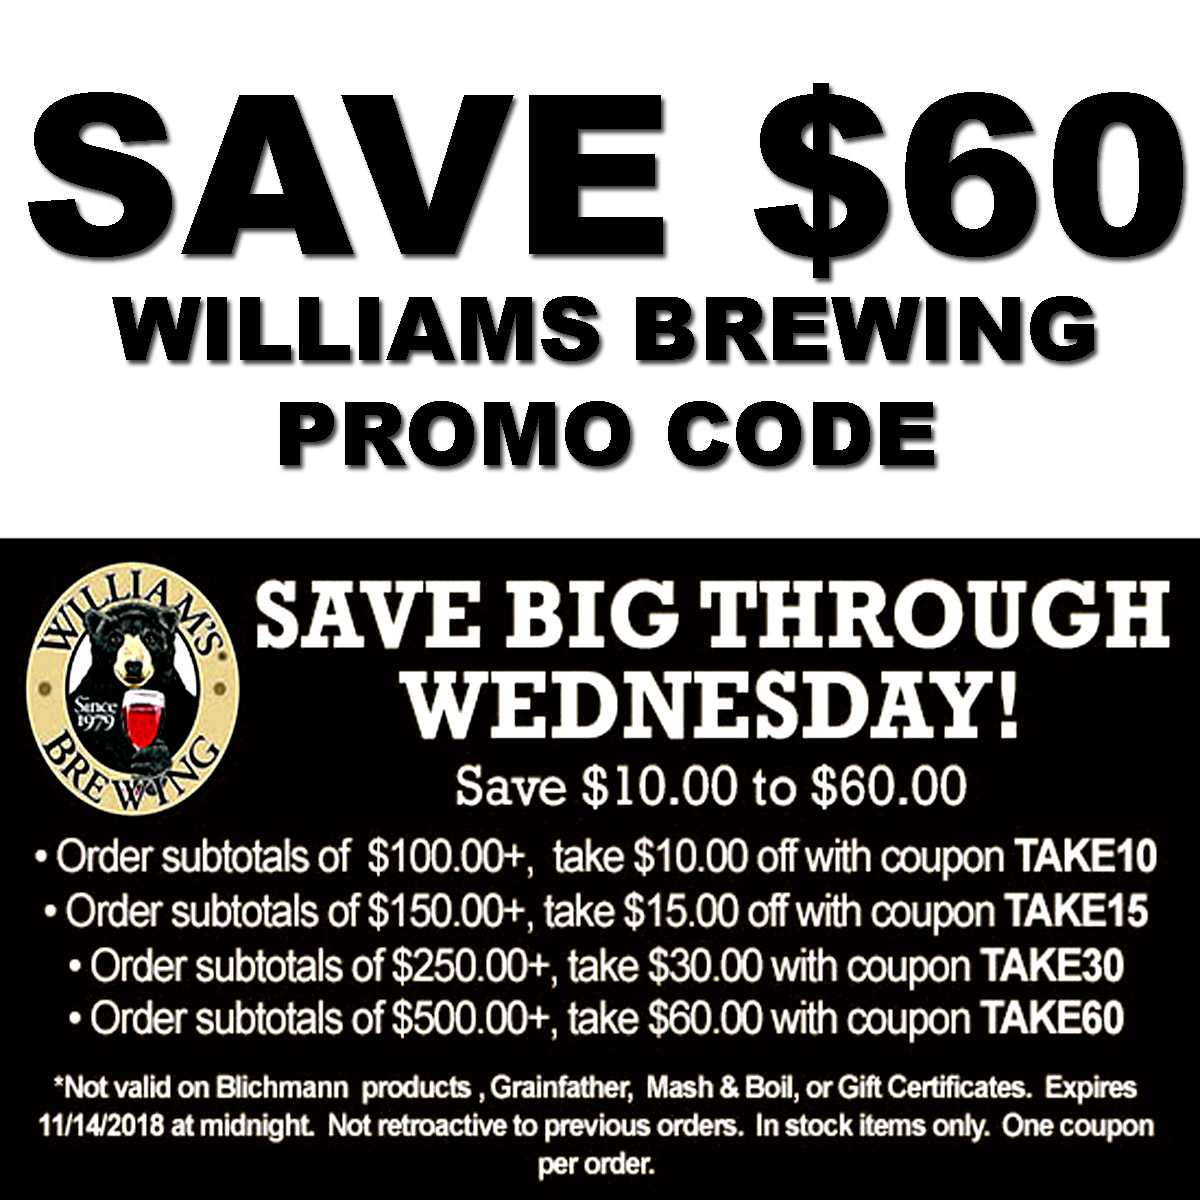 Home Wine Making Coupon Codes for Save up to $60 on your WilliamsBrewing.com Purchase with this William's Brewing Coupon Coupon Code